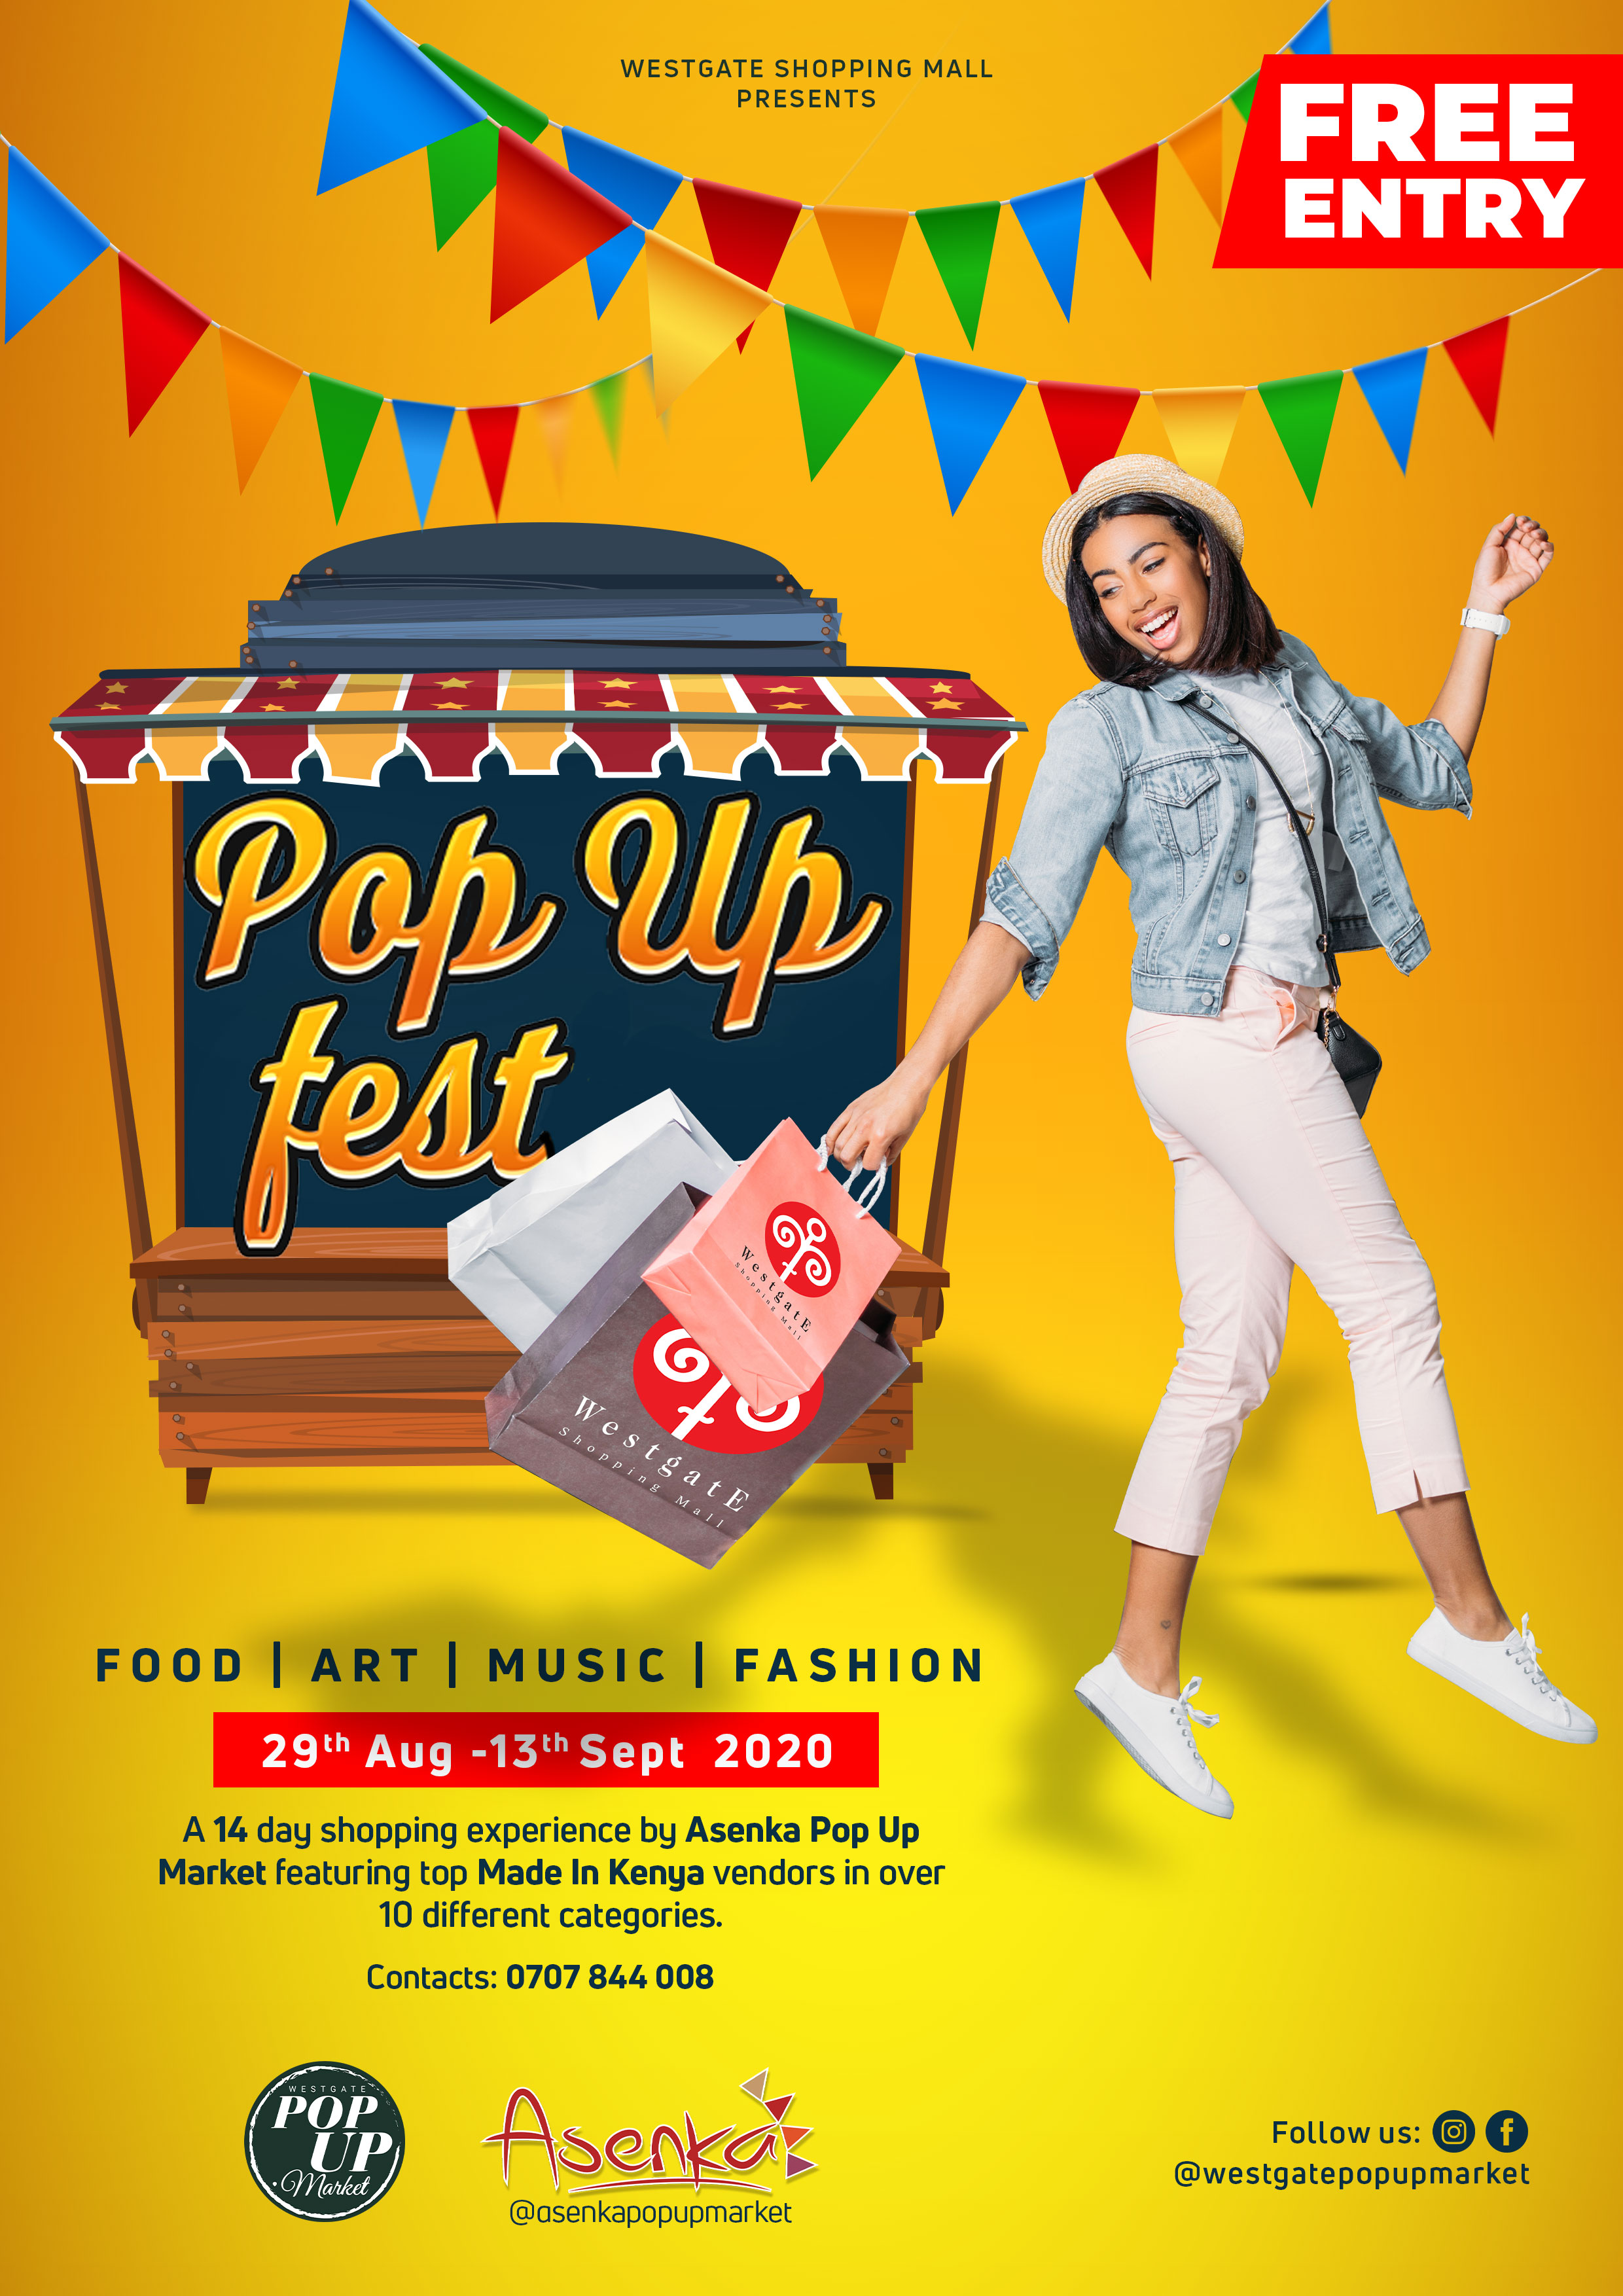 The Pop Up Fest